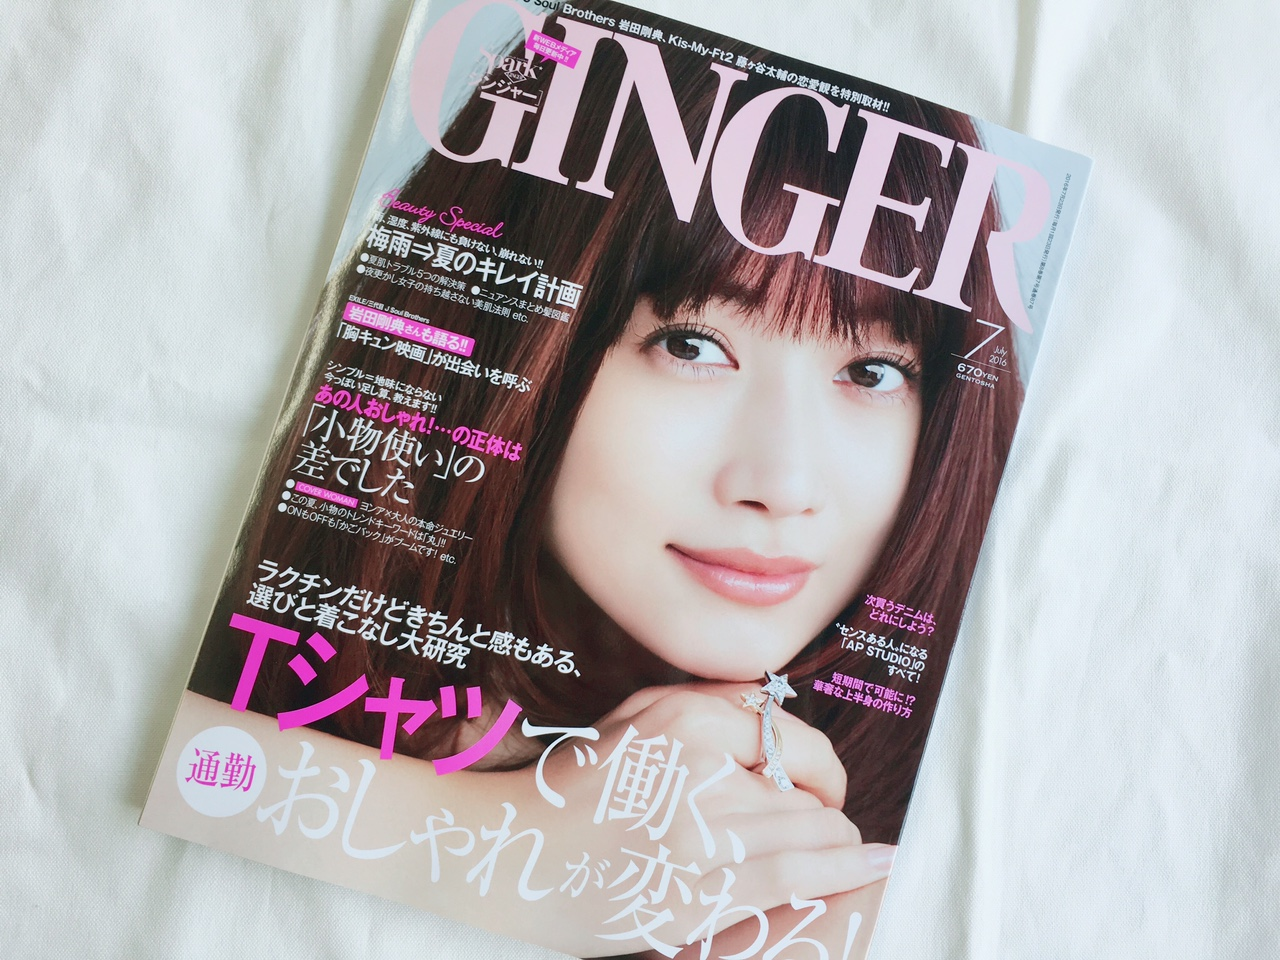 「GINGER」7月号掲載 パールピアス&ネックレス 受注承ります。